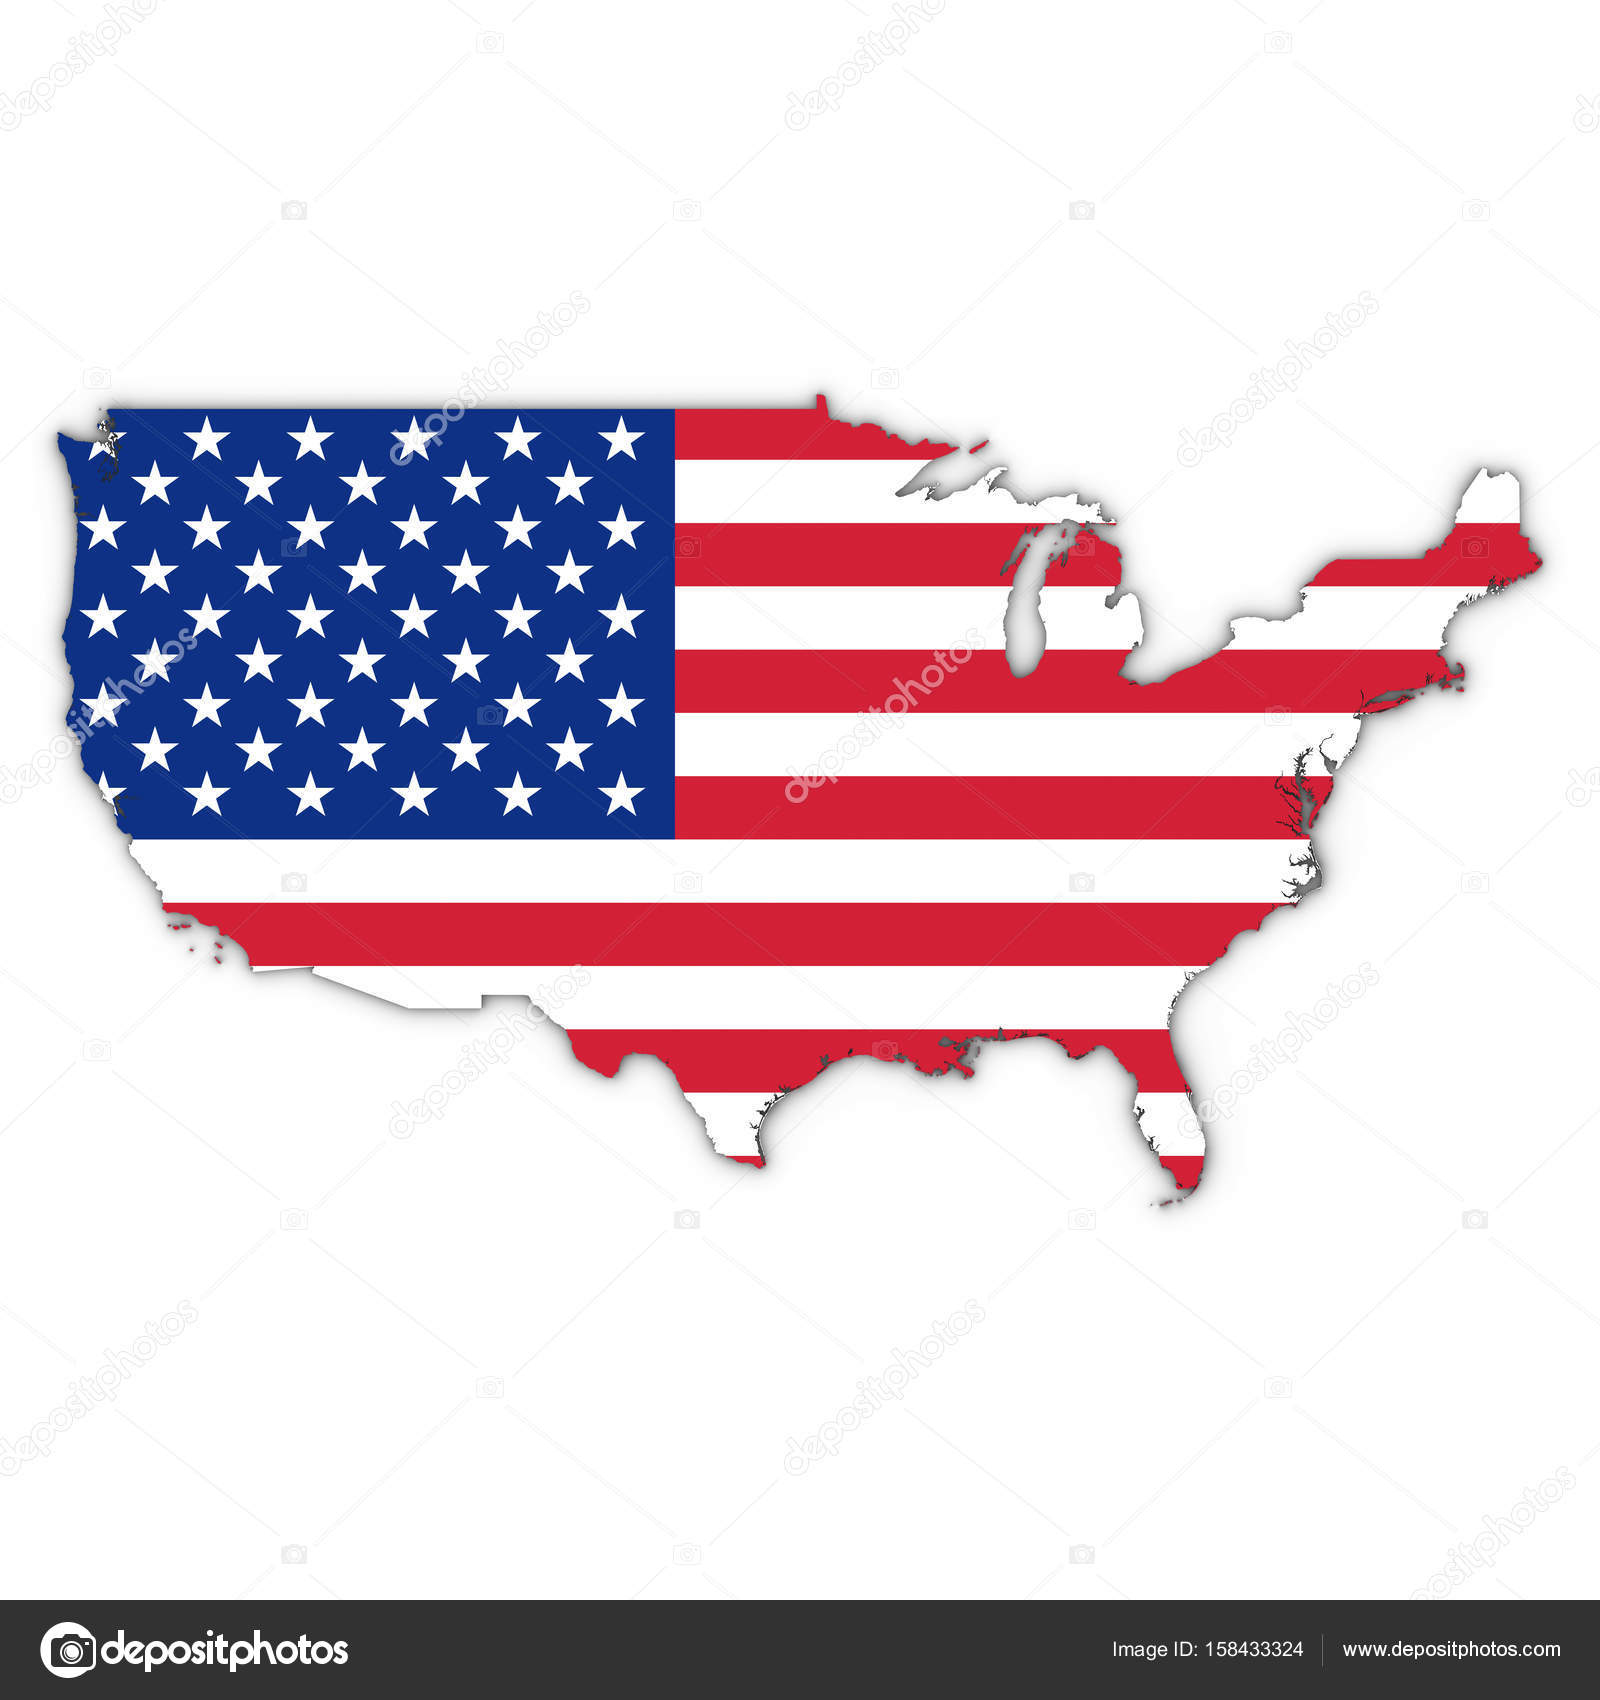 United States Map Outline With American Flag On White With Shado - American-flag-us-map